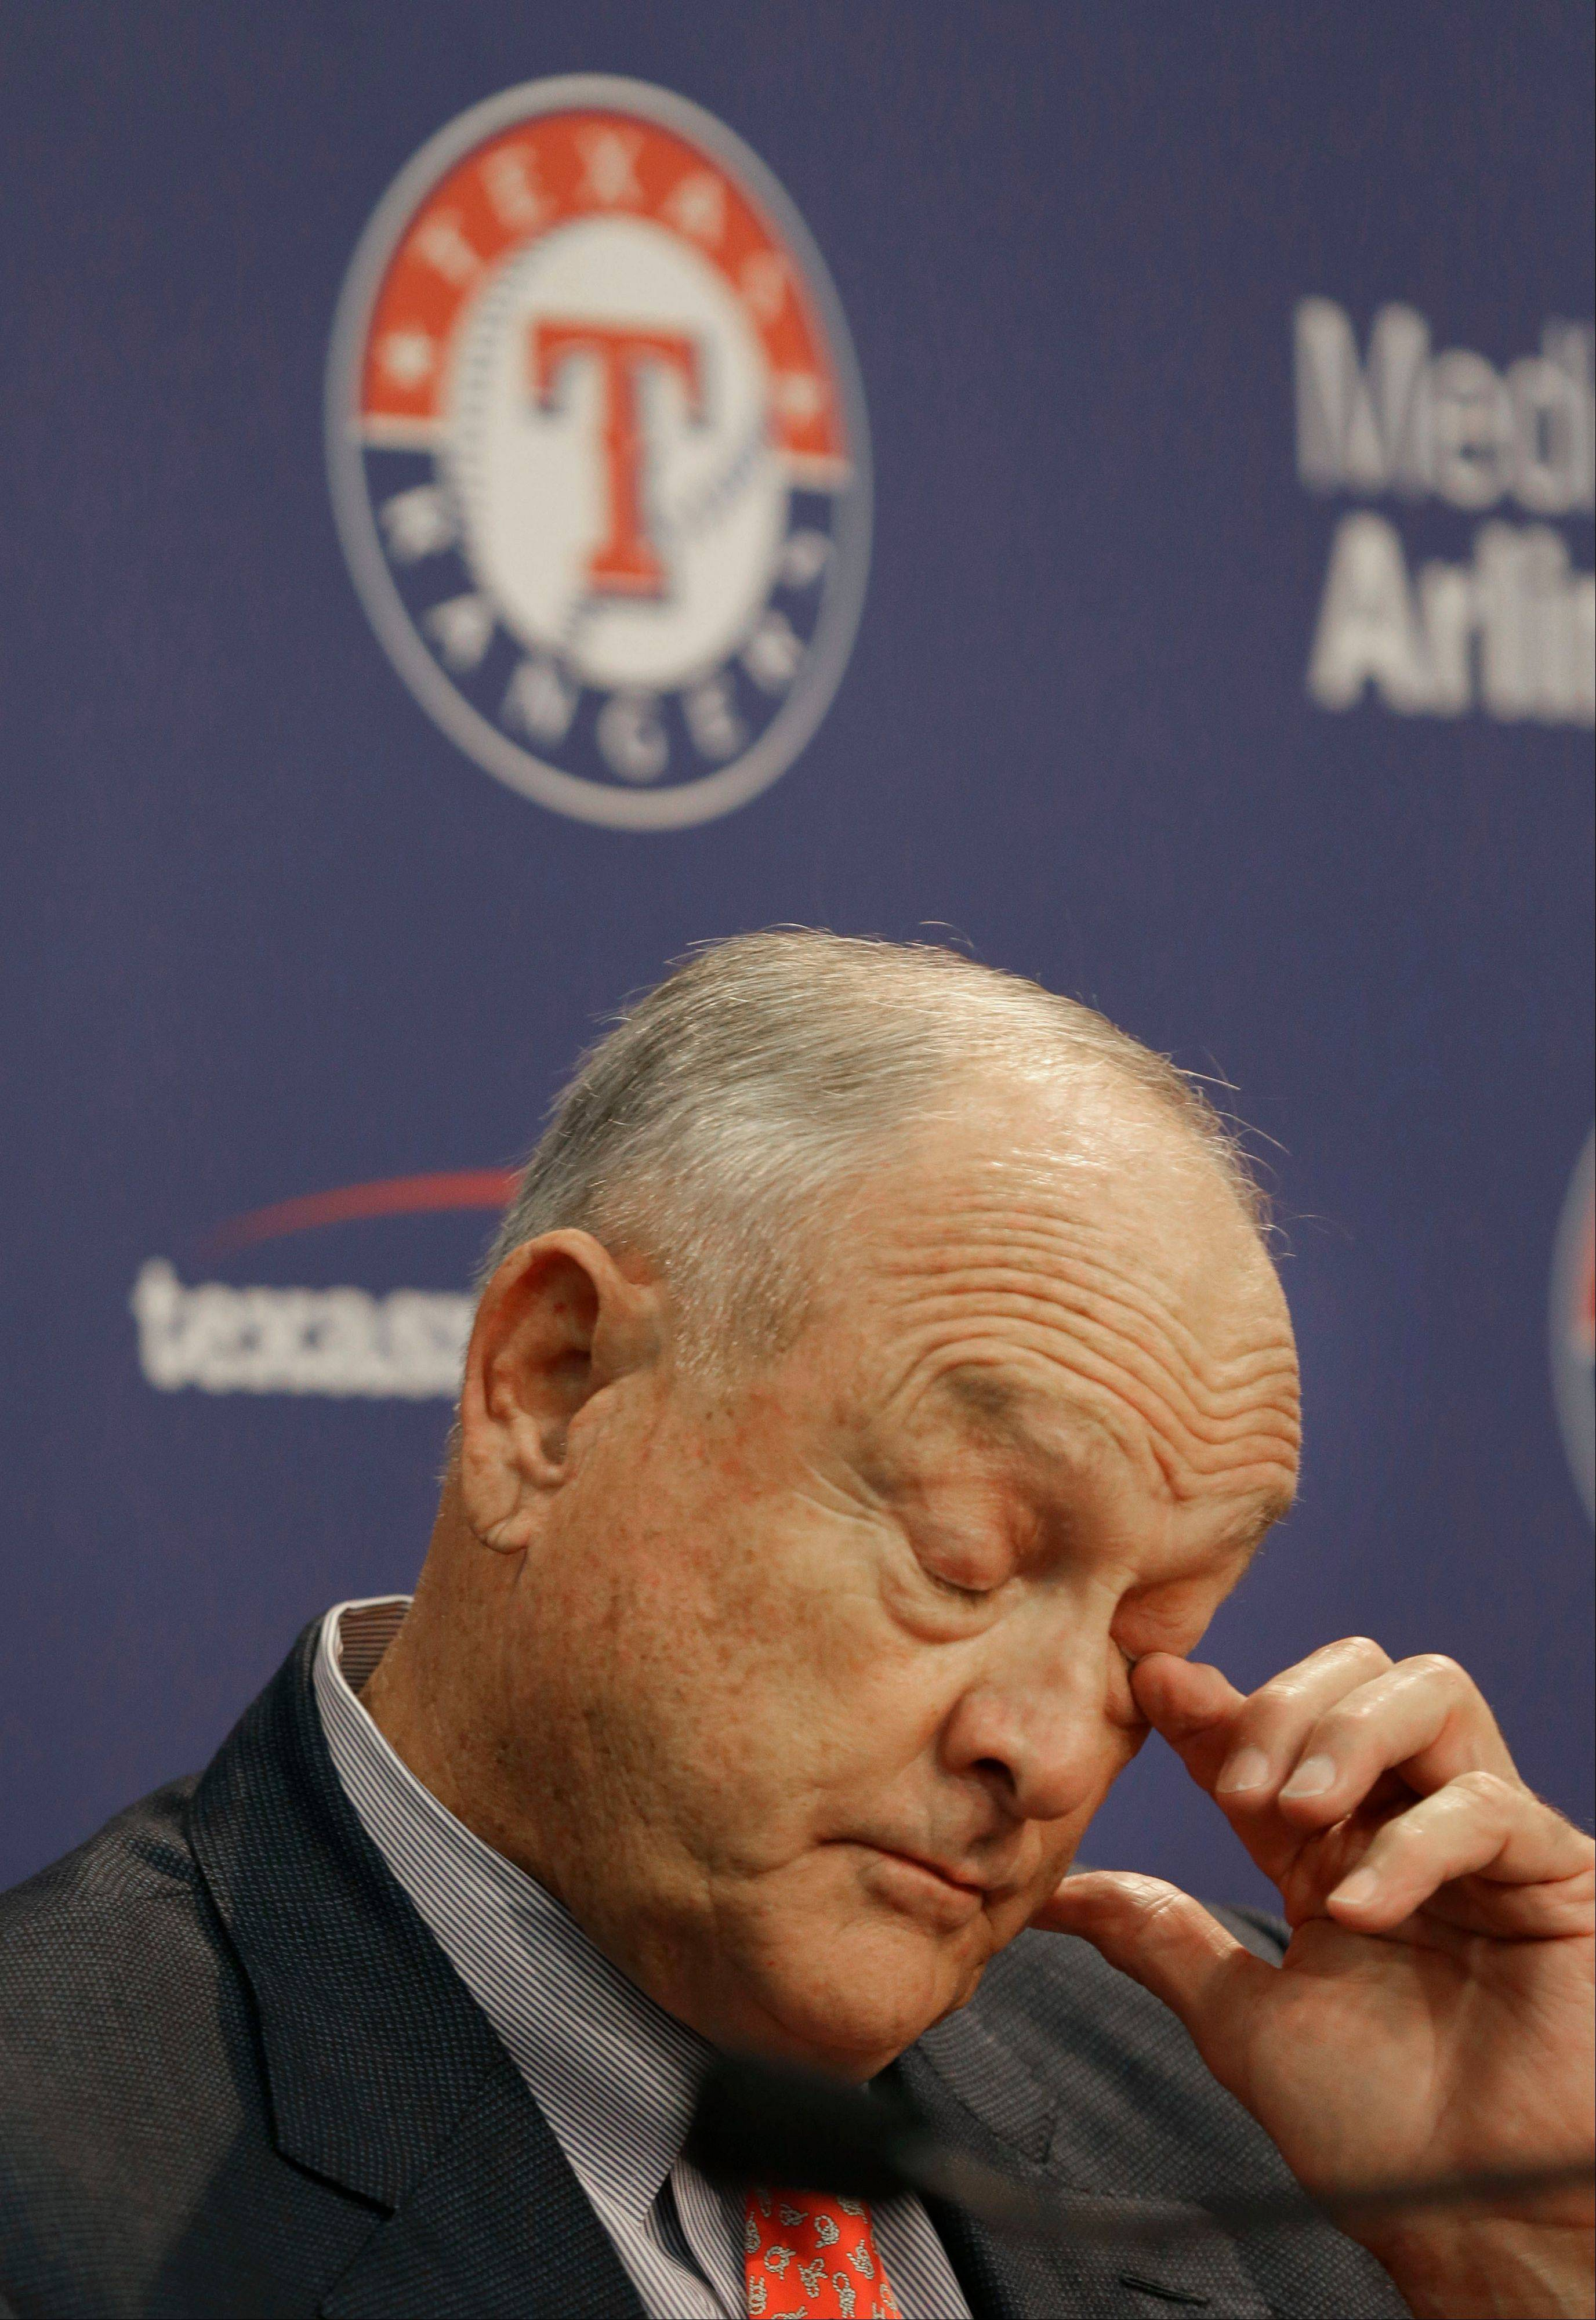 Texas Rangers CEO and President Nolan Ryan wipes his eye during a news conference announcing his retirement from the ballclub Thursday, Oct. 17, 2013 in Arlington, Texas. Ryan will step down at the end of this month. (AP Photo/LM Otero)